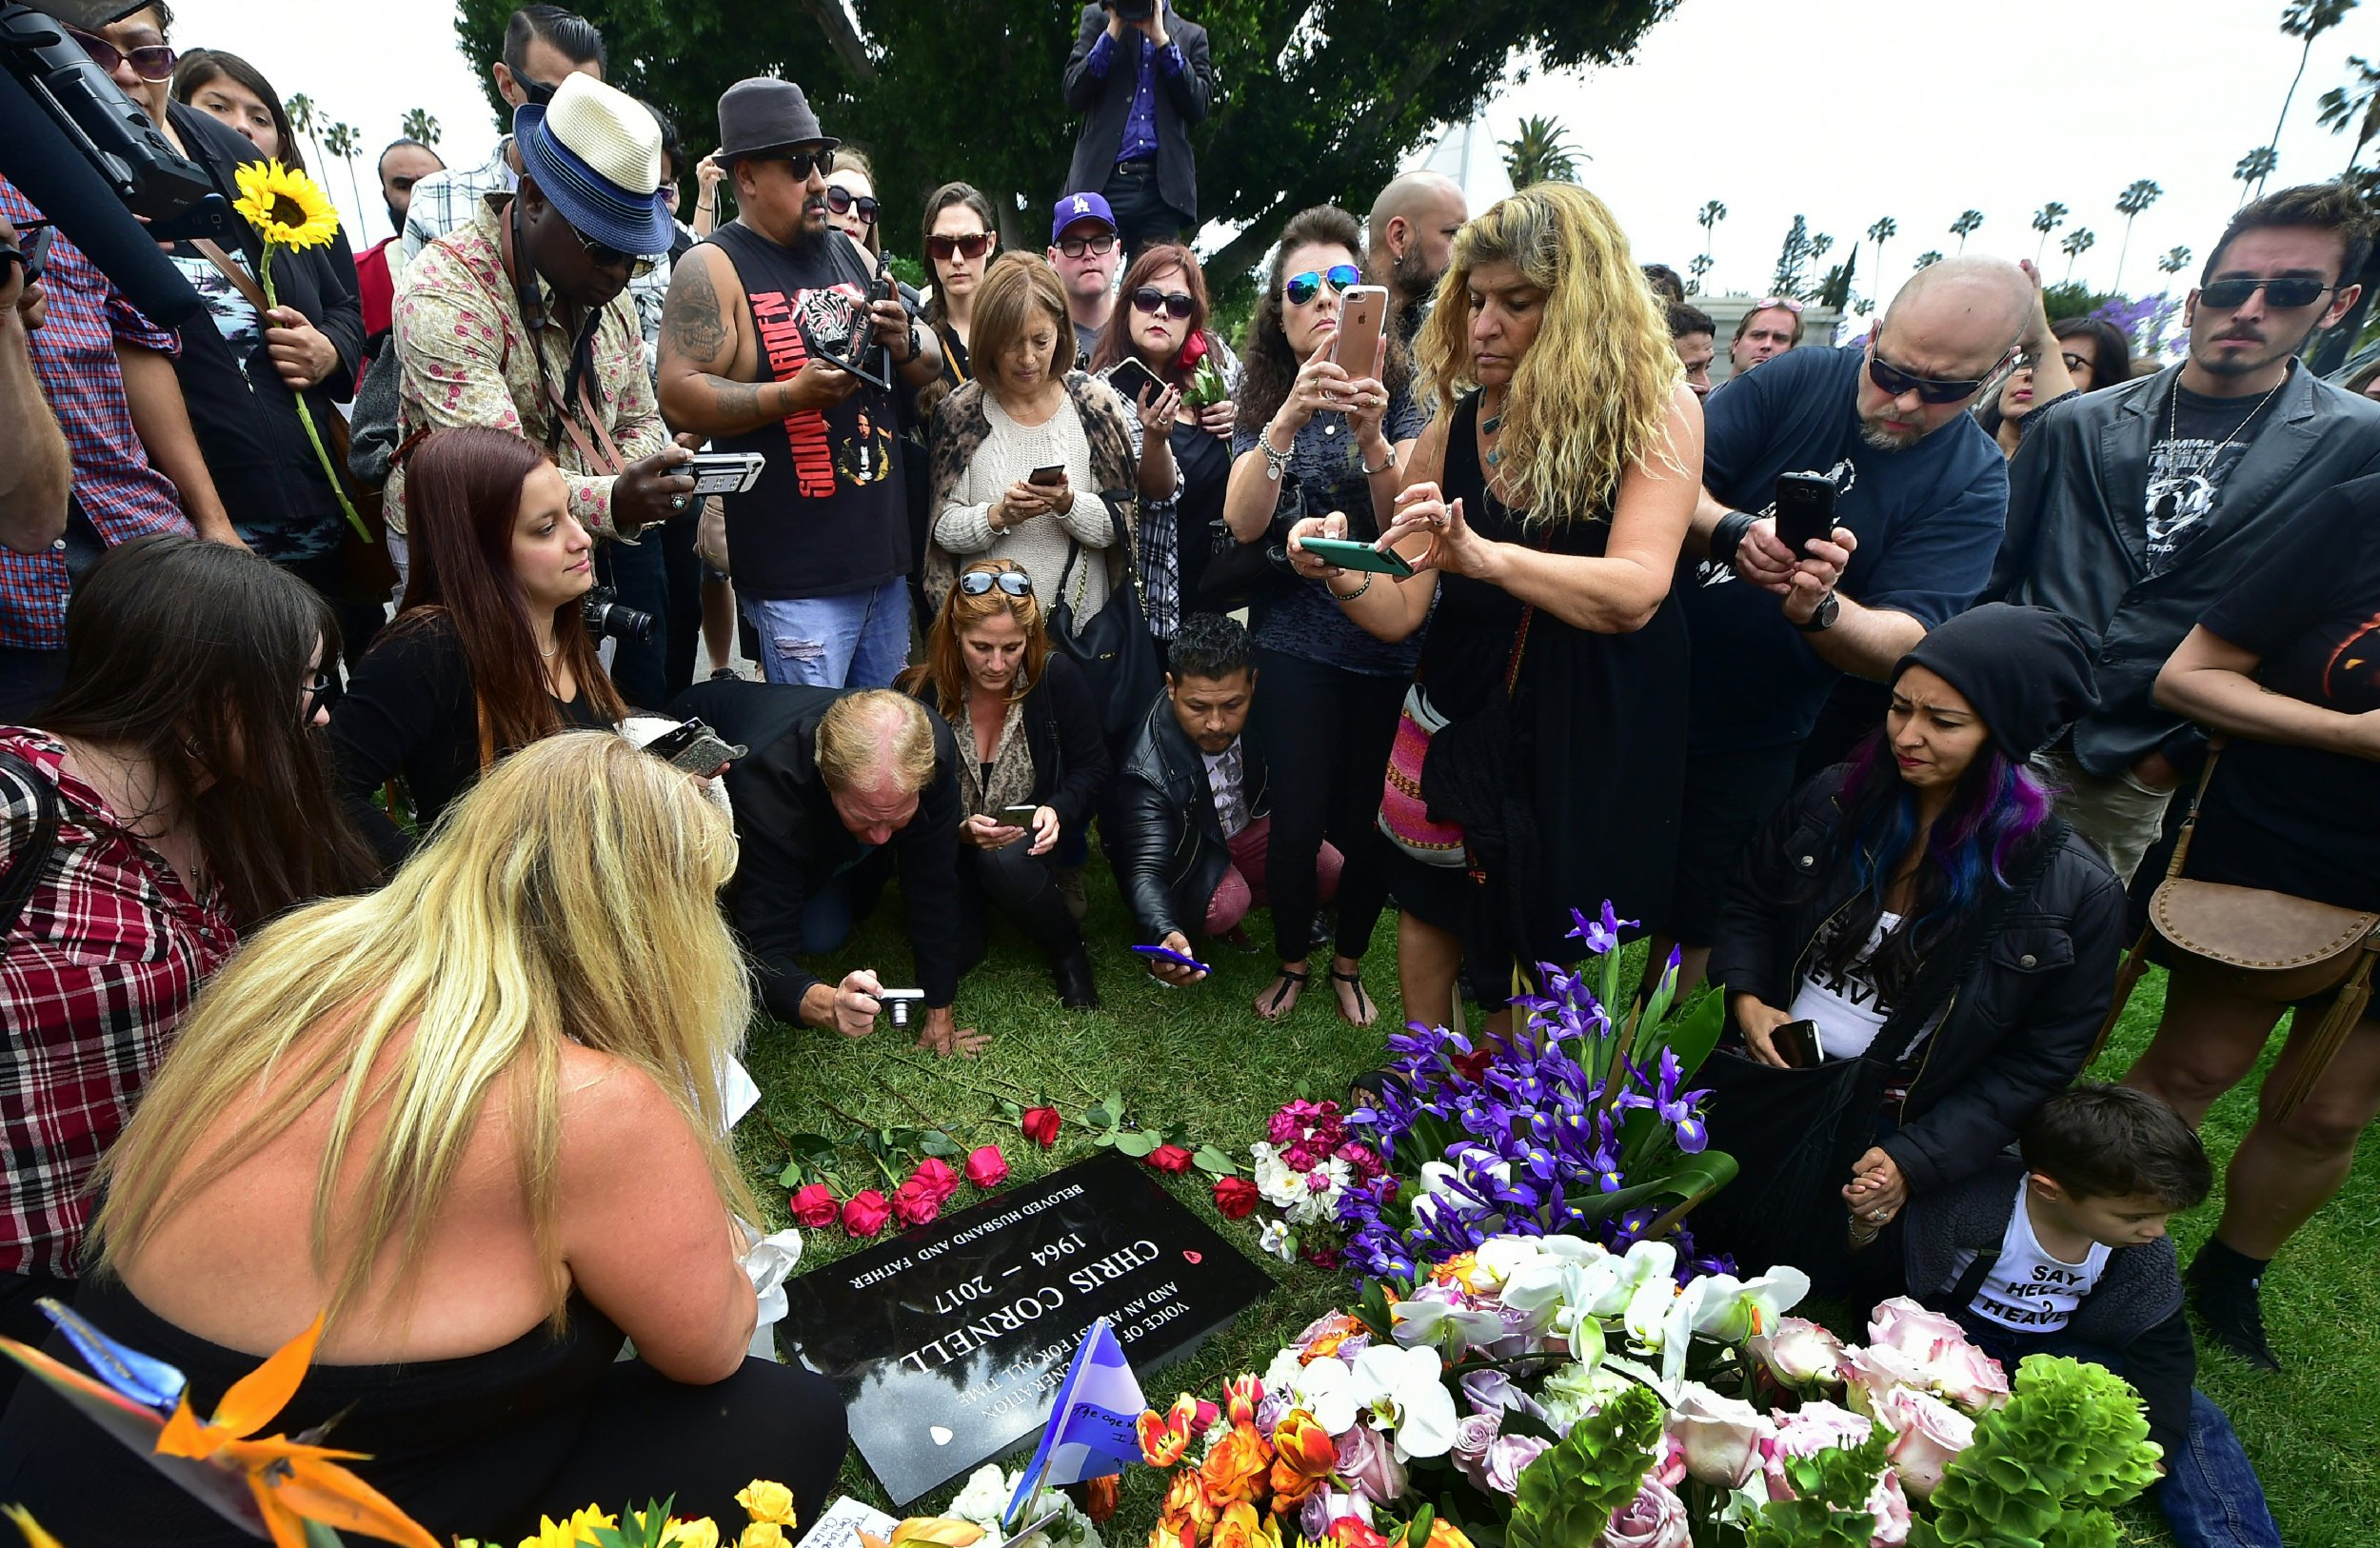 chris cornell grave site fans asked to stop filming at soundgarden